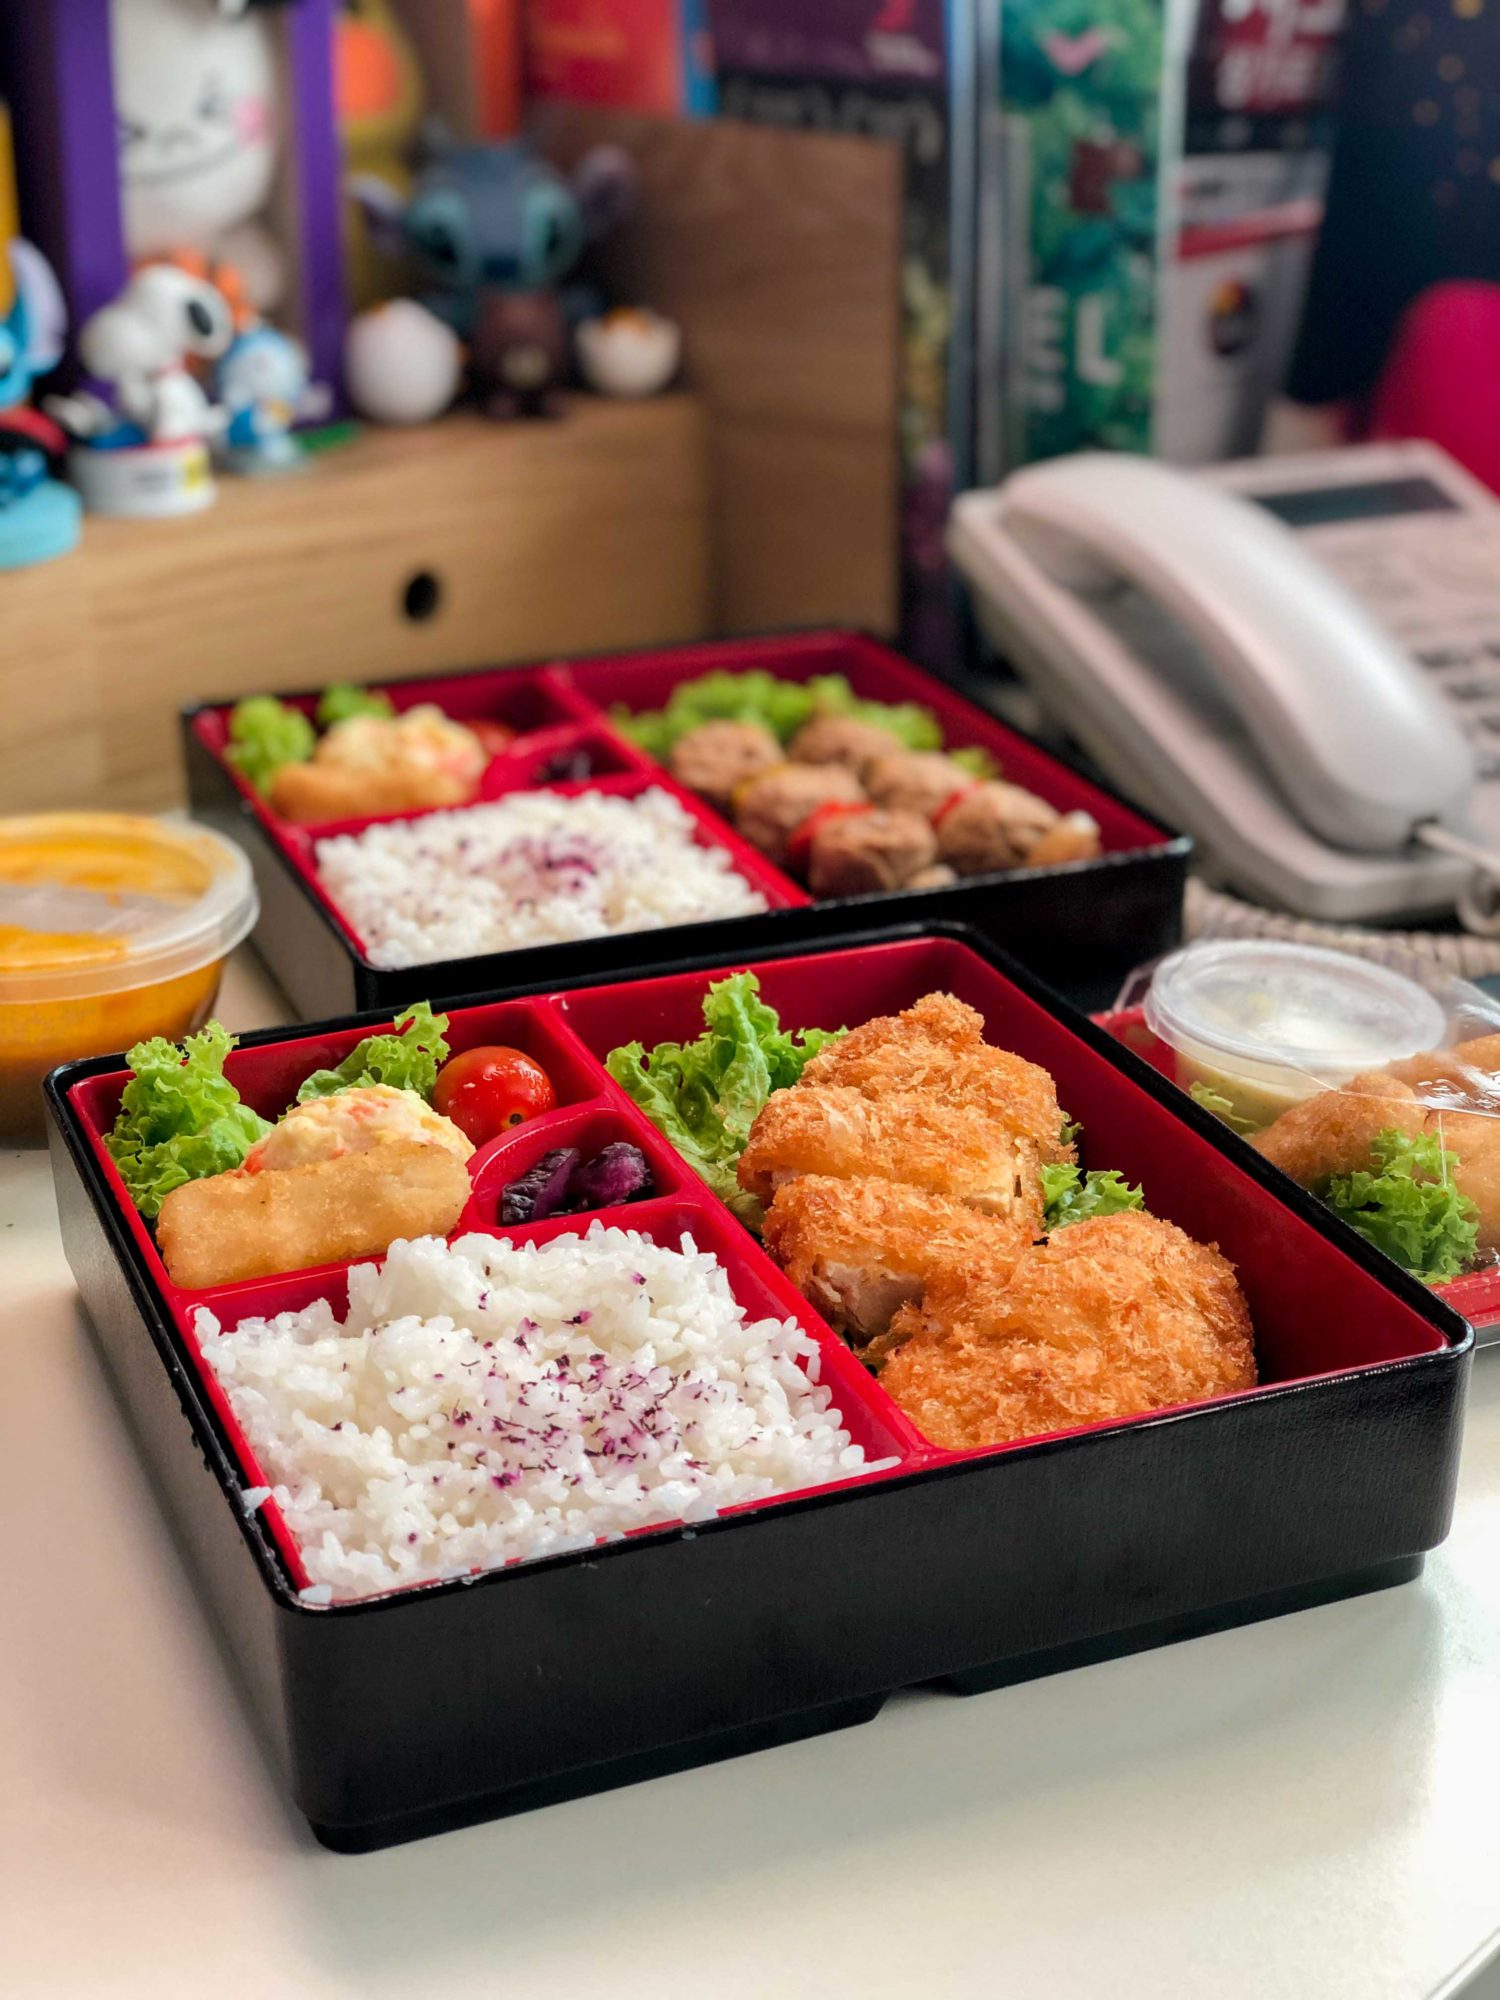 Meat-free Katsu Curry Bento $10.80 Crispy panko-breaded Quorn® fillet served with Japanese curry, Quorn® nugget, potato salad & rice.